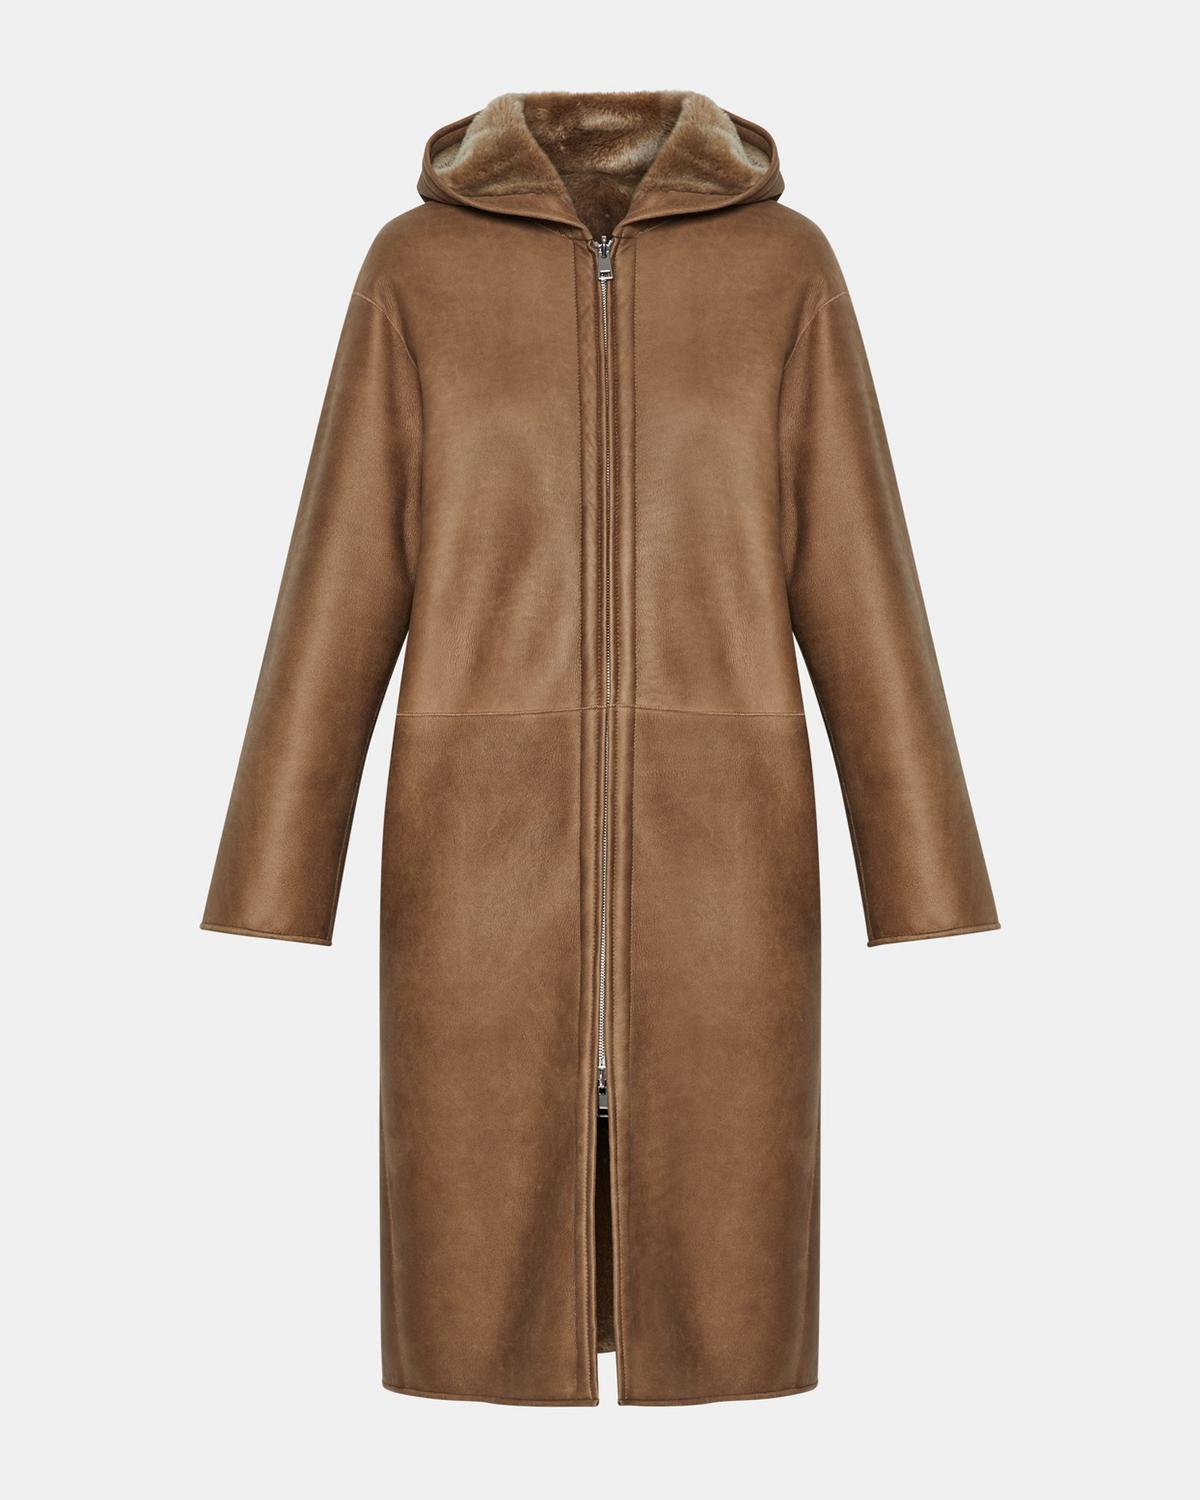 Reversible Silky Shearling Hooded Coat